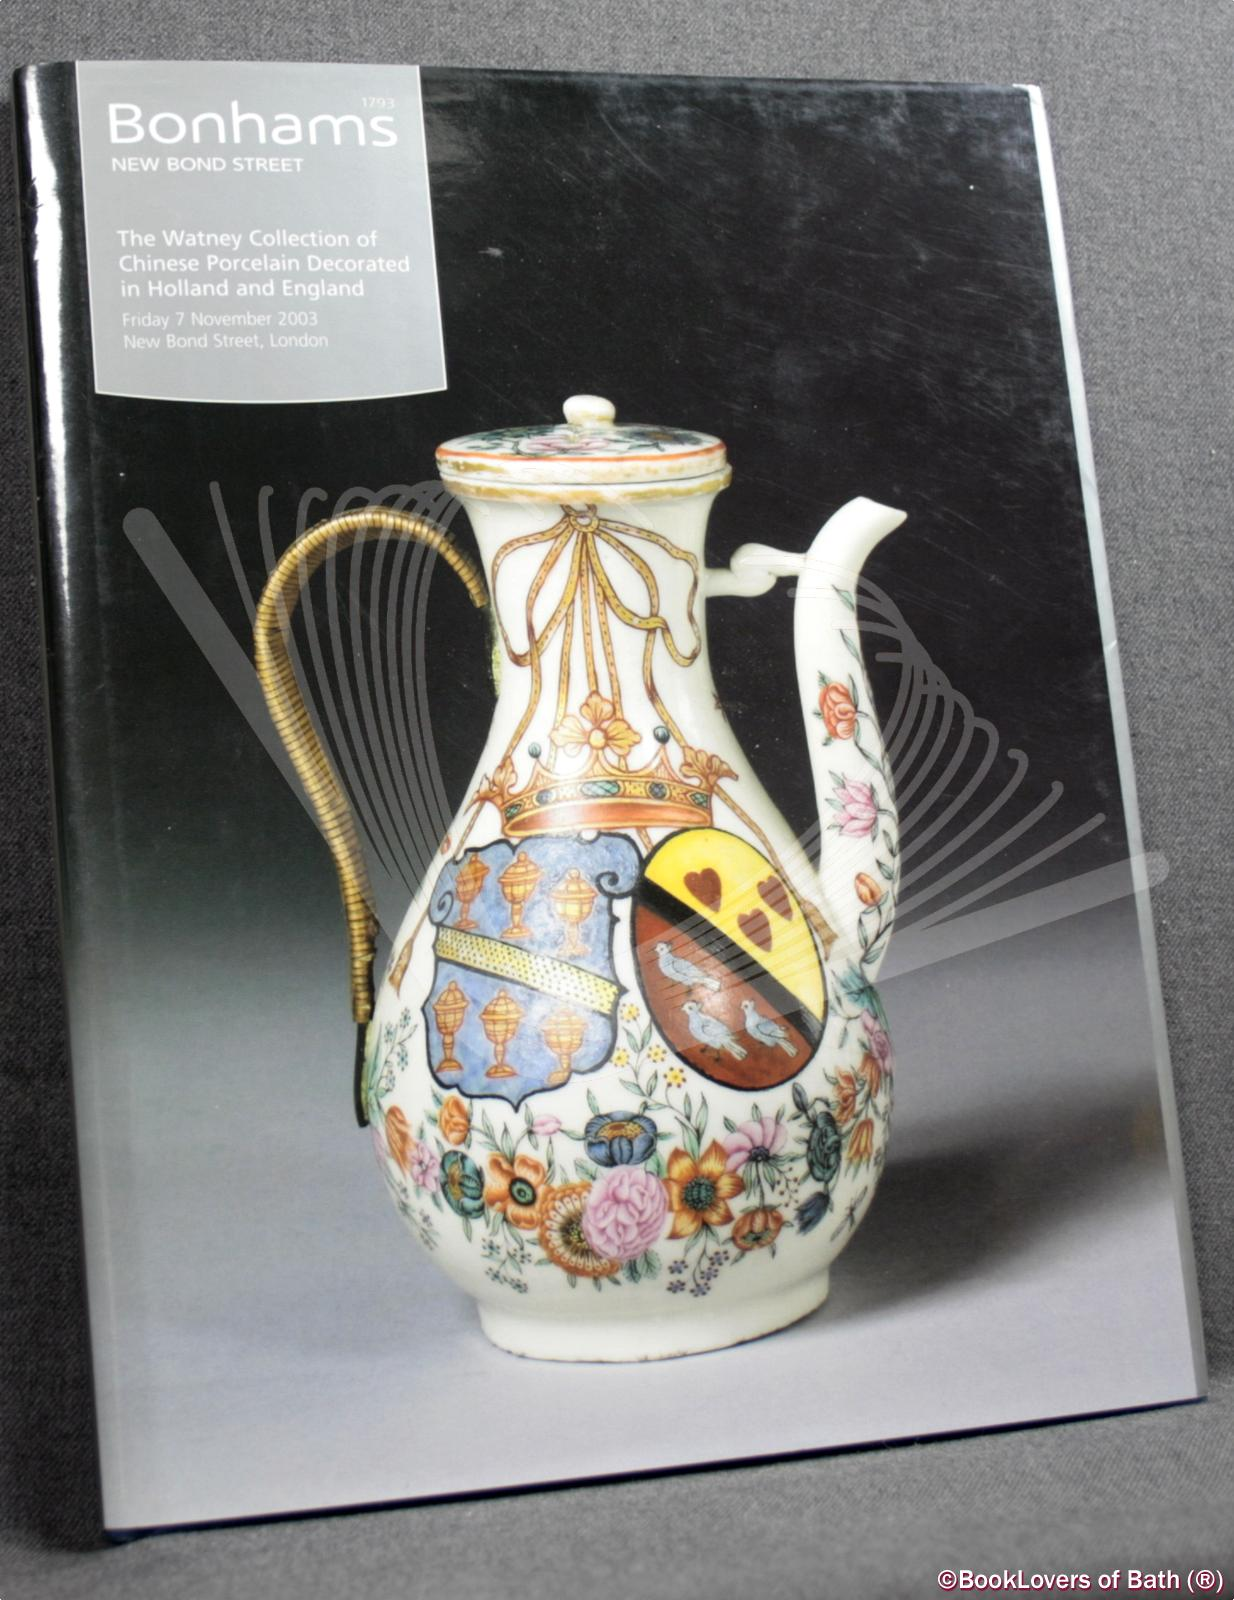 The Watney Collection of Chinese Porcelain Decorated in Holland and England Friday 7 November 2003 3pm - Anon.